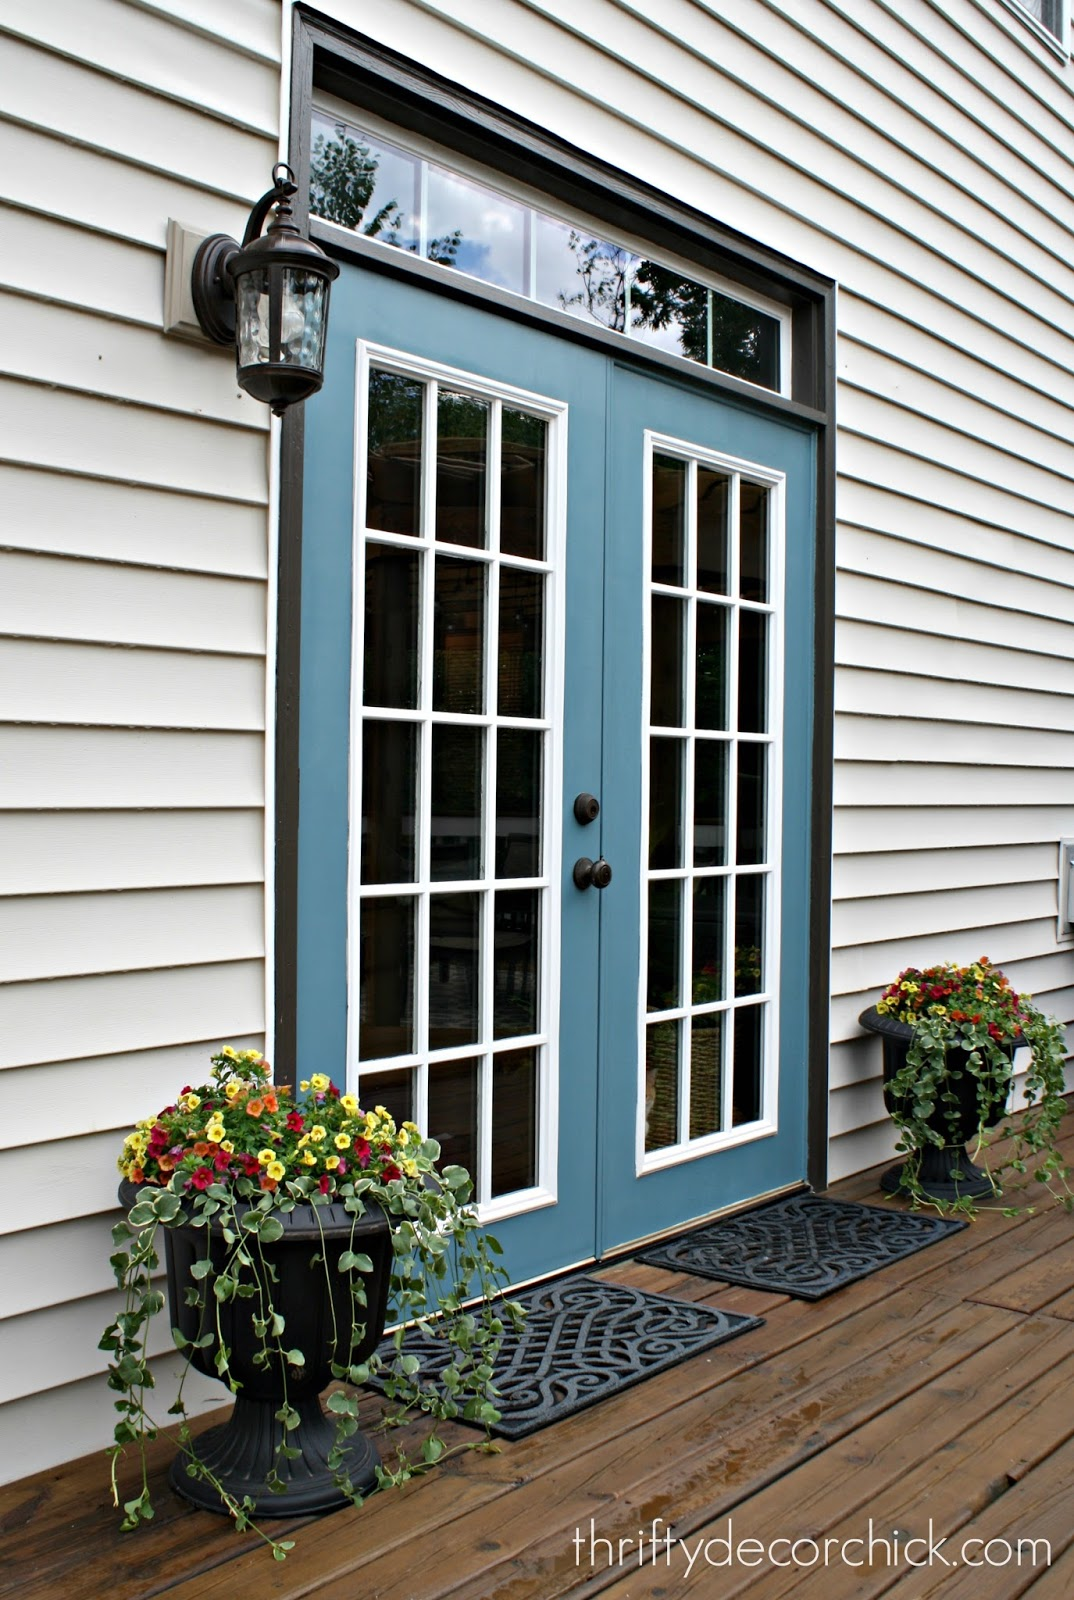 patio doors from thrifty decor chick